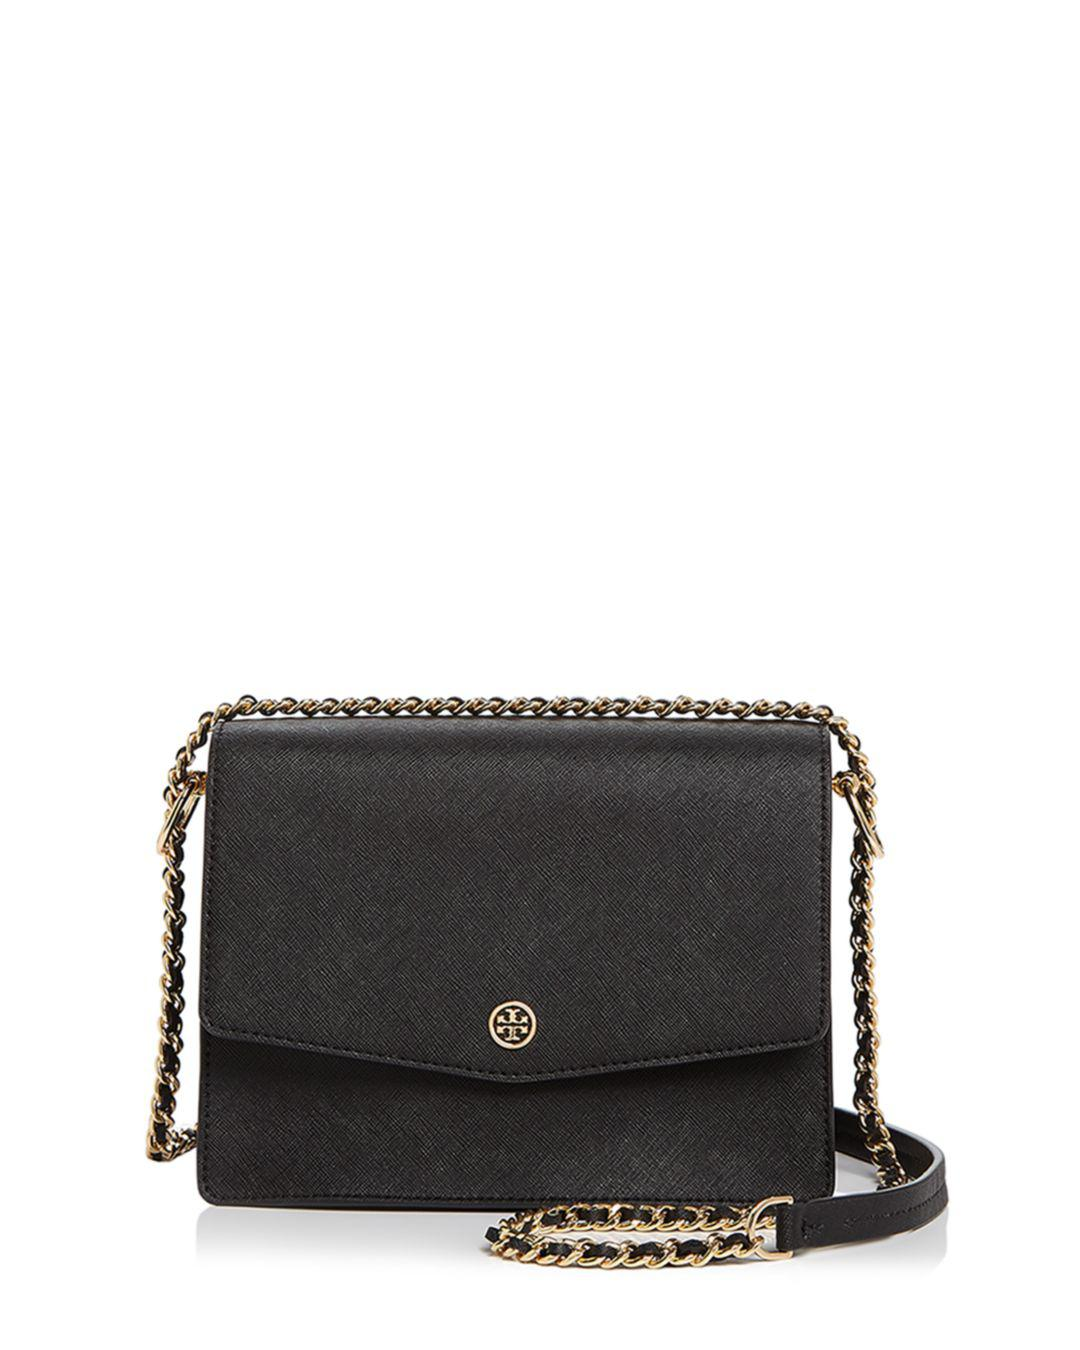 12b83ef5ff5a Lyst - Tory Burch Robinson Convertible Leather Shoulder Bag in Black